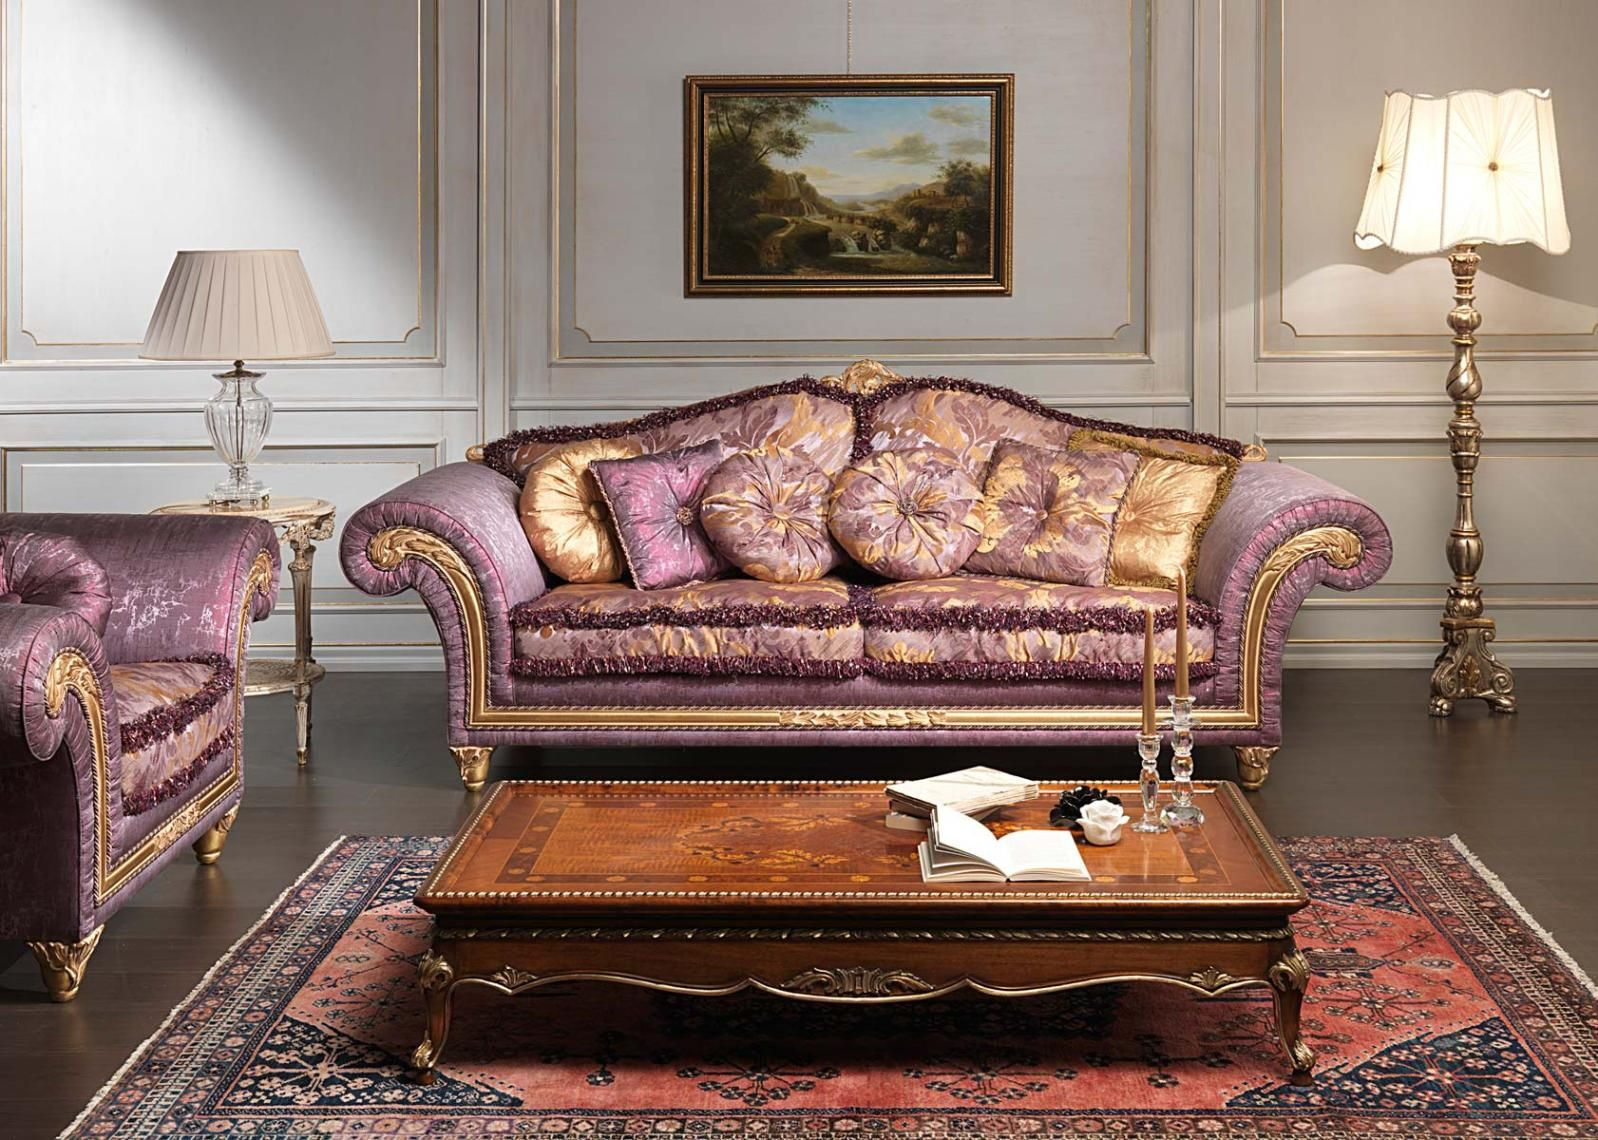 italian sofas simple living. Luxury Classic Sofa And Armchairs - Imperial By Vimercati Media DigsDigs Italian Sofas Simple Living H